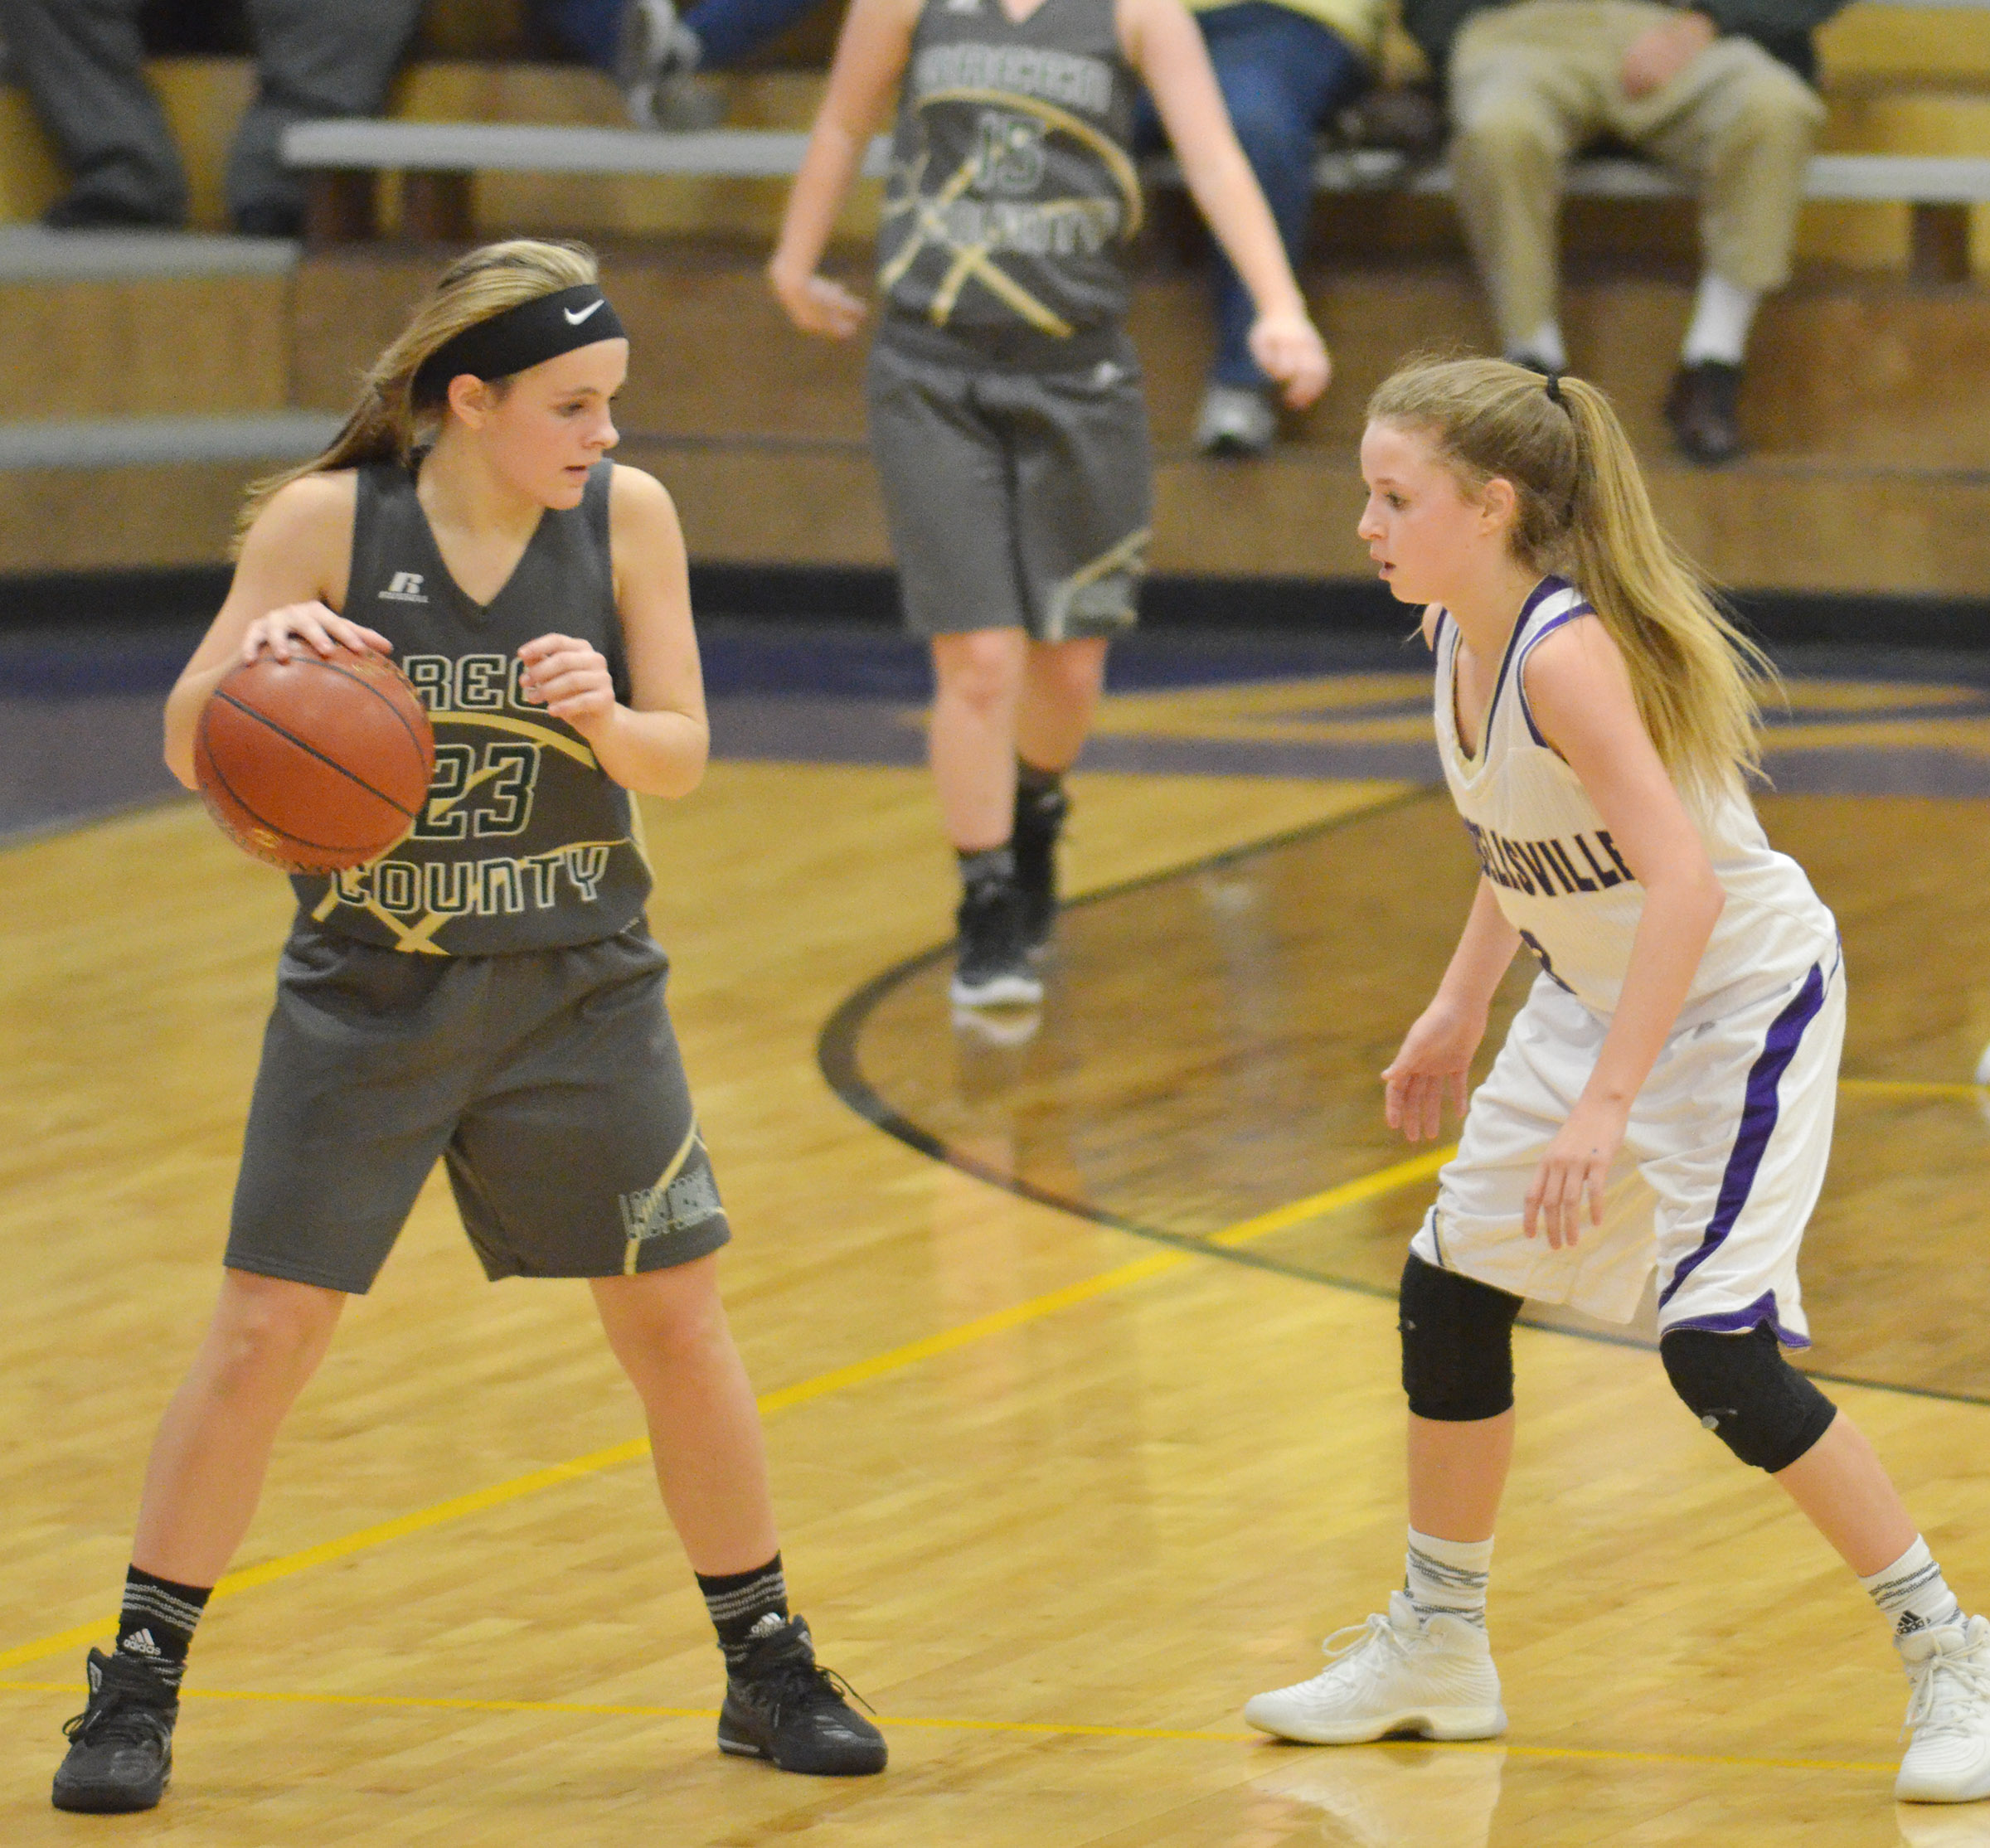 Campbellsville Middle School eighth-grader Rylee Petett plays defense.